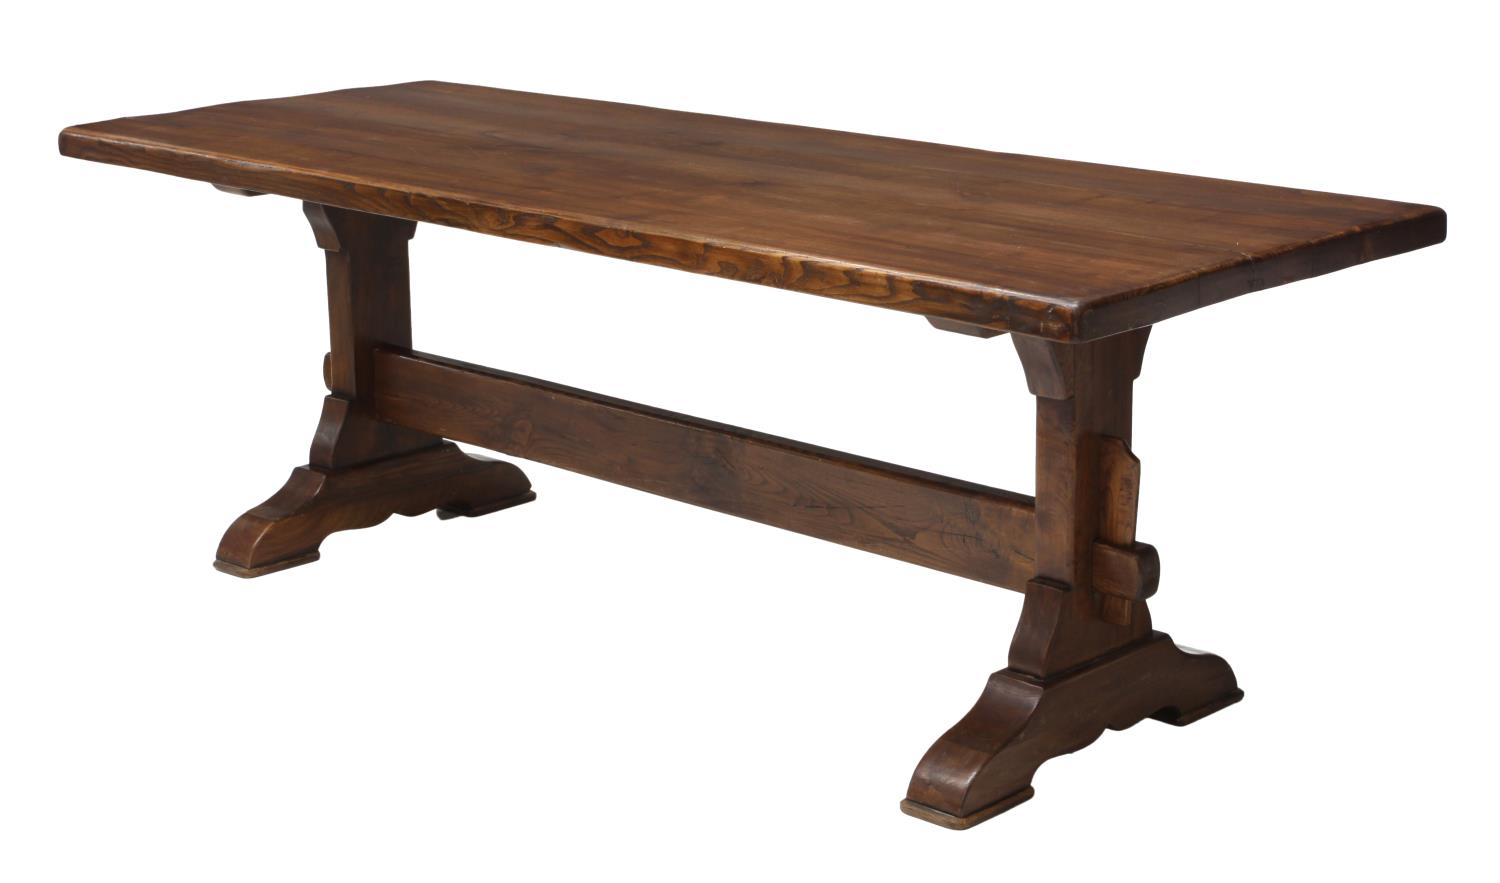 4 ITALIAN OAK REFECTORY DINING TABLE 20TH C  : 934 from www.austinauction.com size 1500 x 883 jpeg 59kB